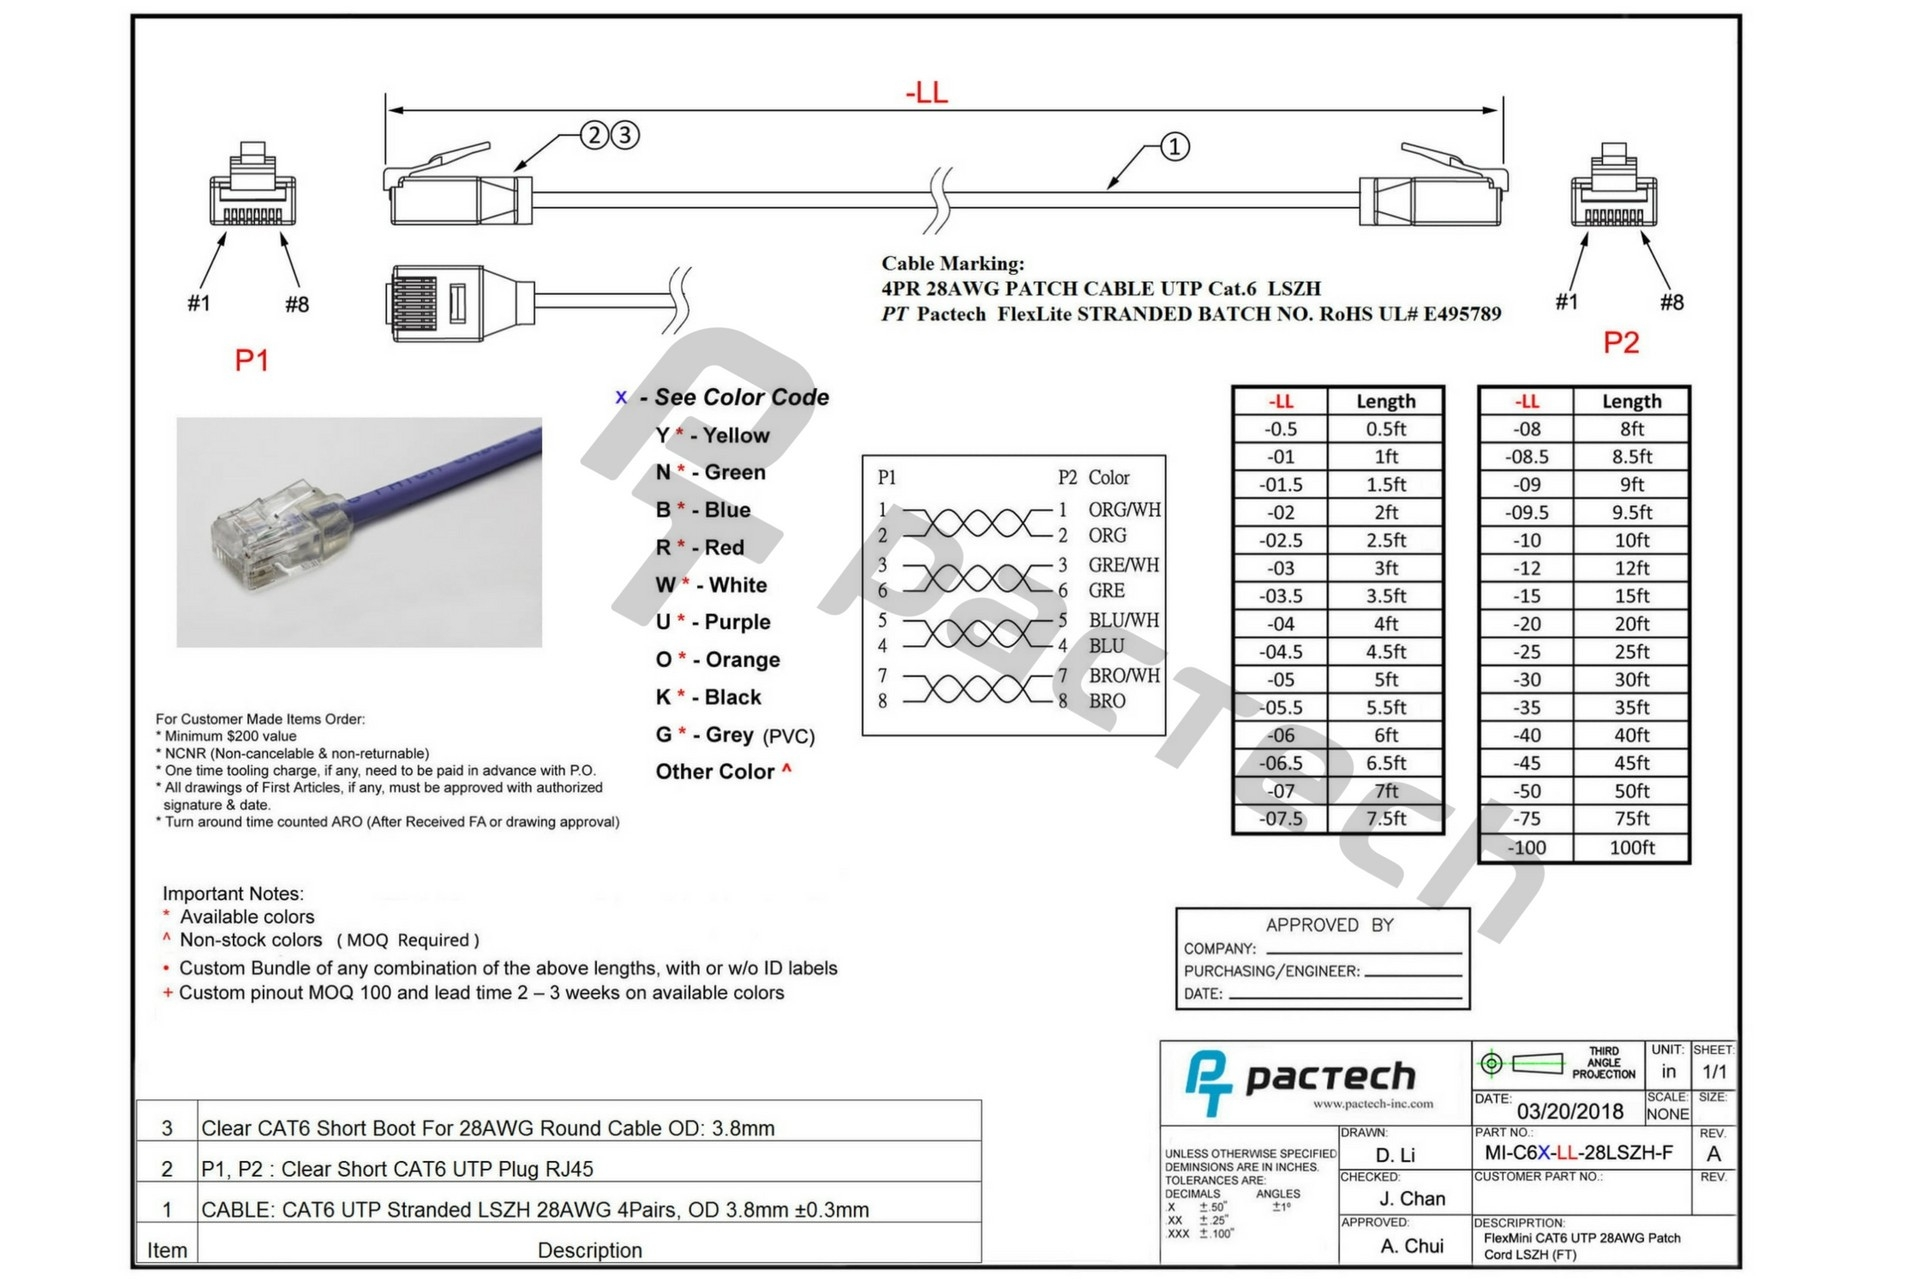 cat 5 cable wiring diagram on cat 5 cable wiring diagram for phone